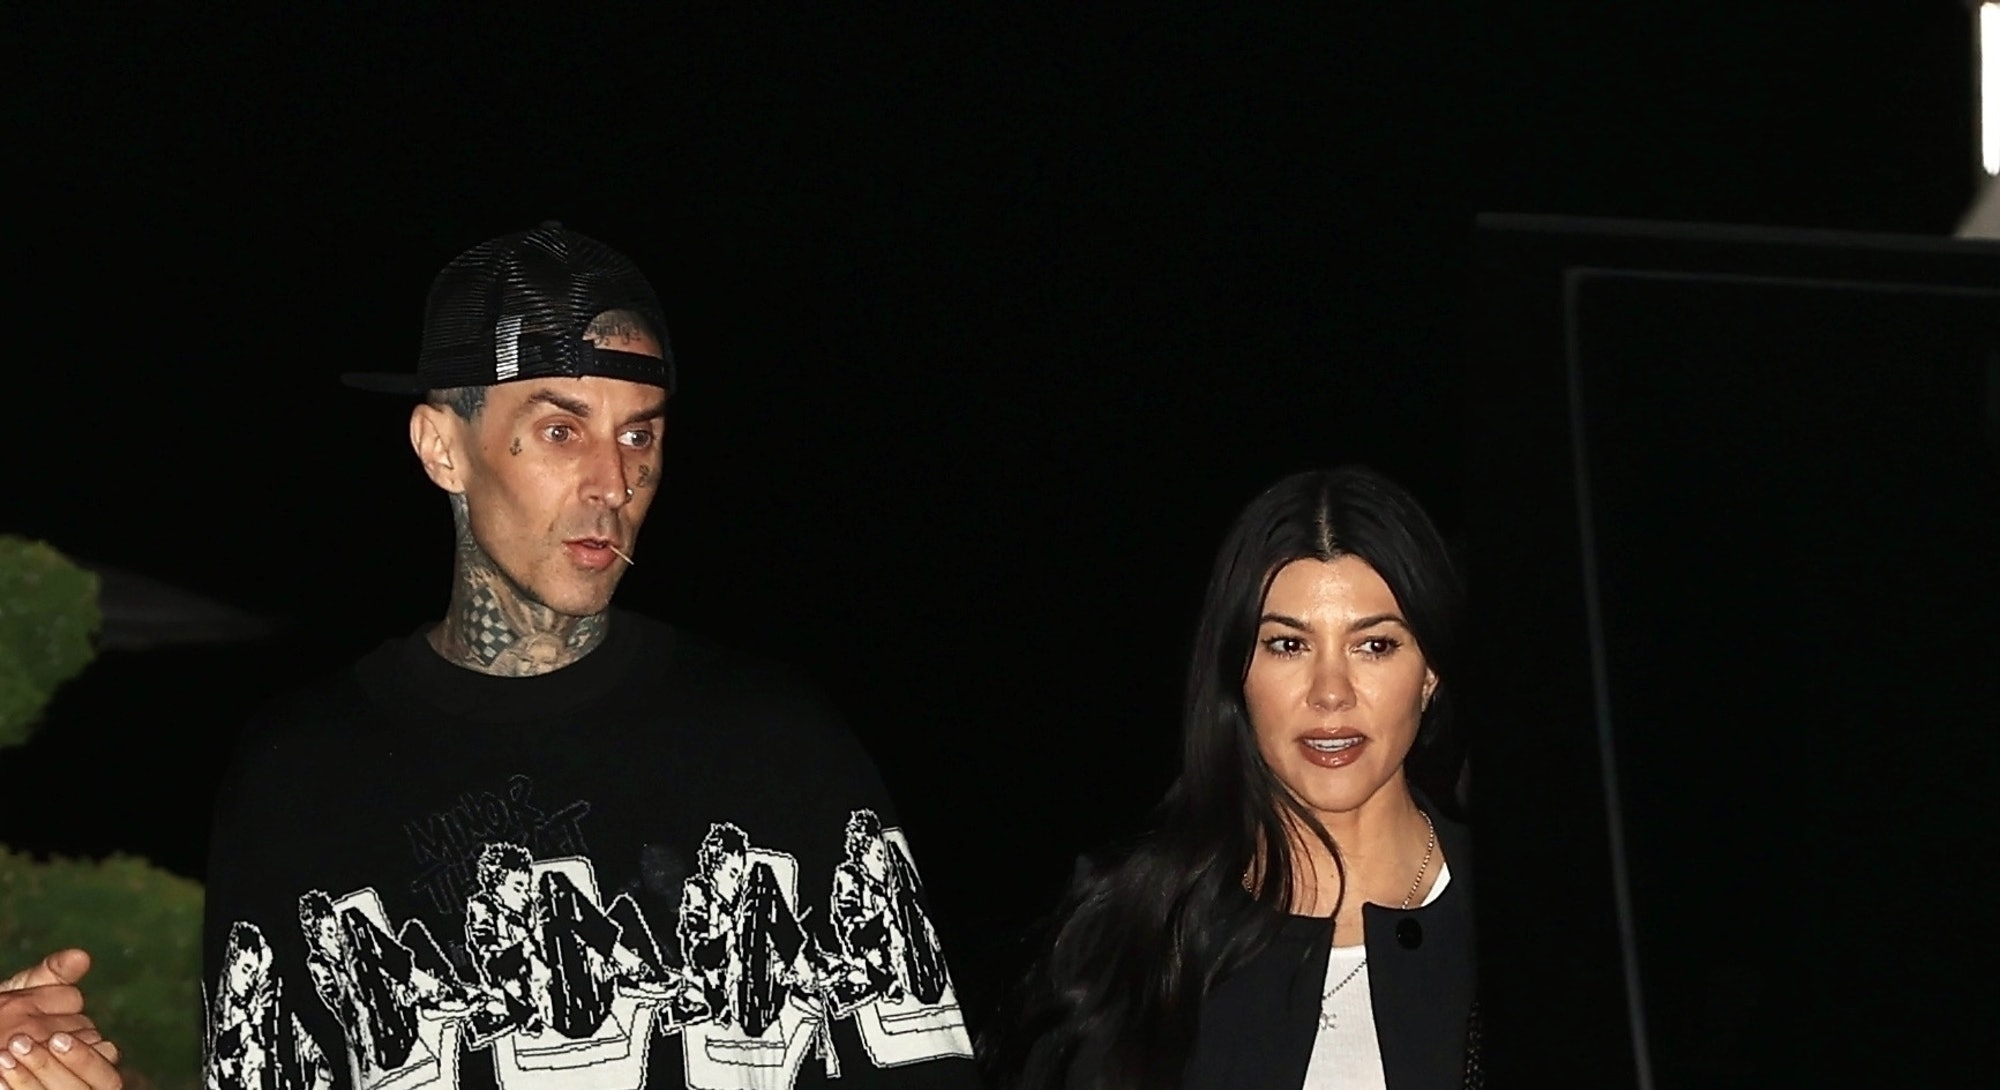 From vintage-inspired tops to open flannel shirts, see Kourtney Kardashian & Travis Barker's best '90s looks as a couple, ahead.